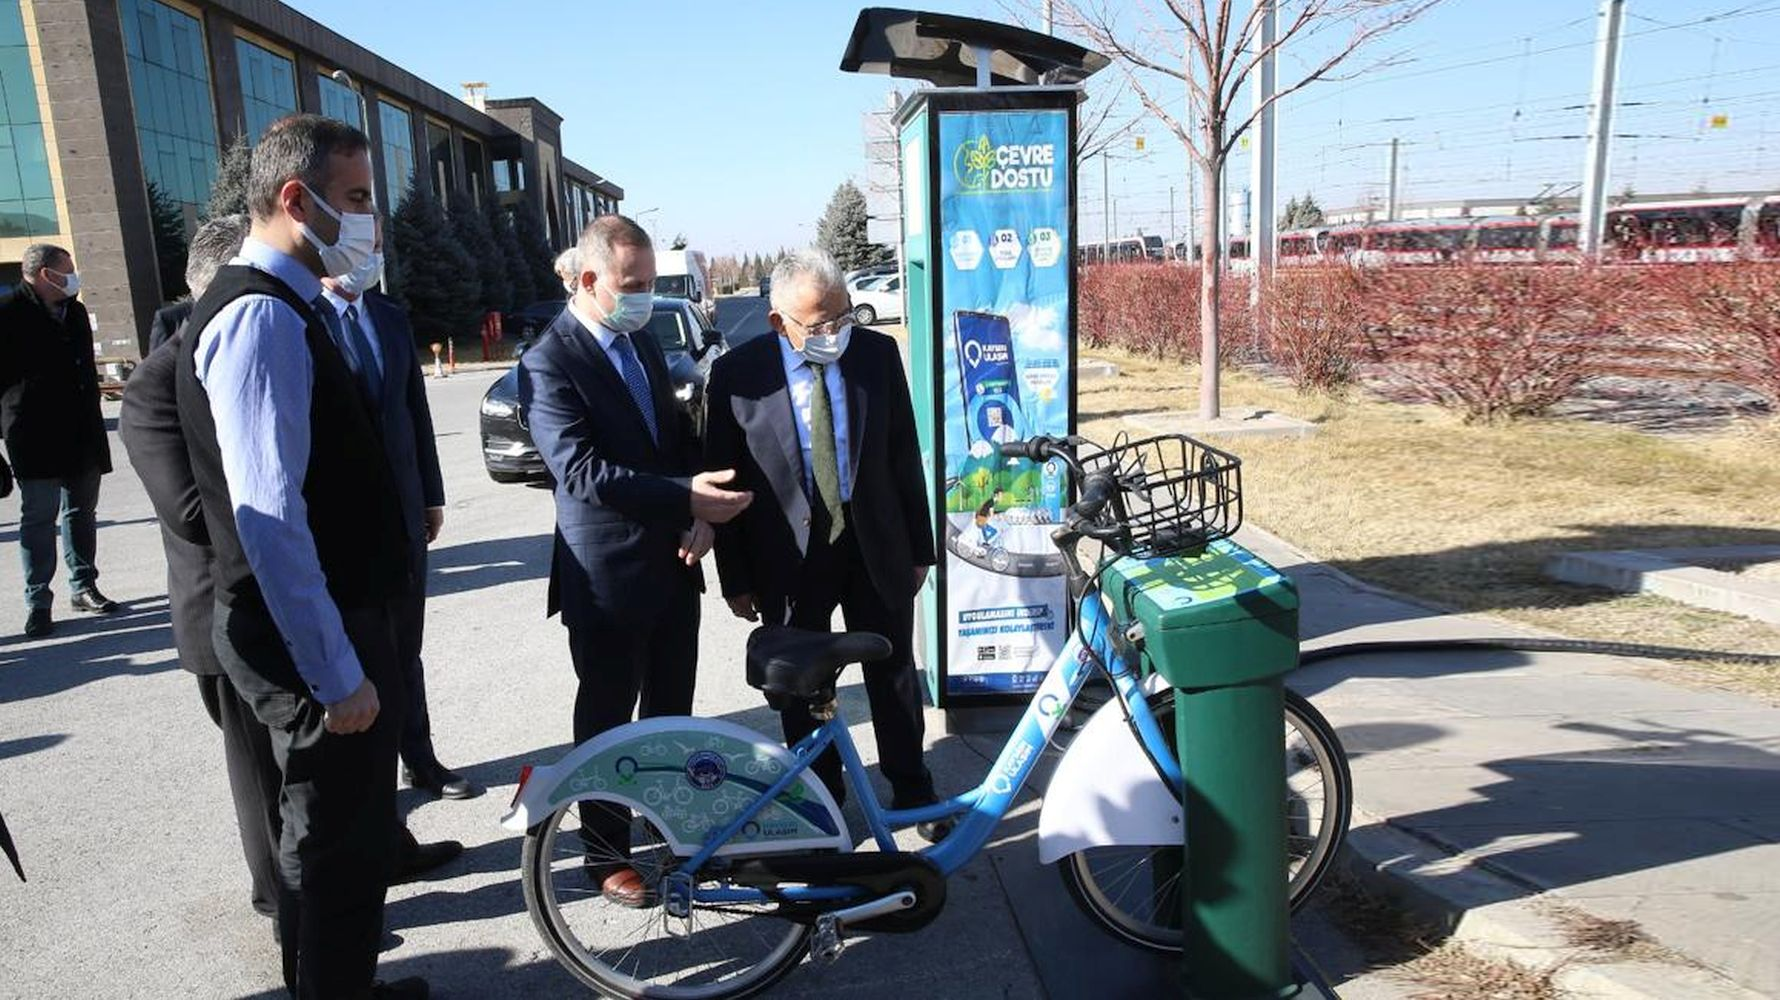 A new smart bike sharing system from Kayseri